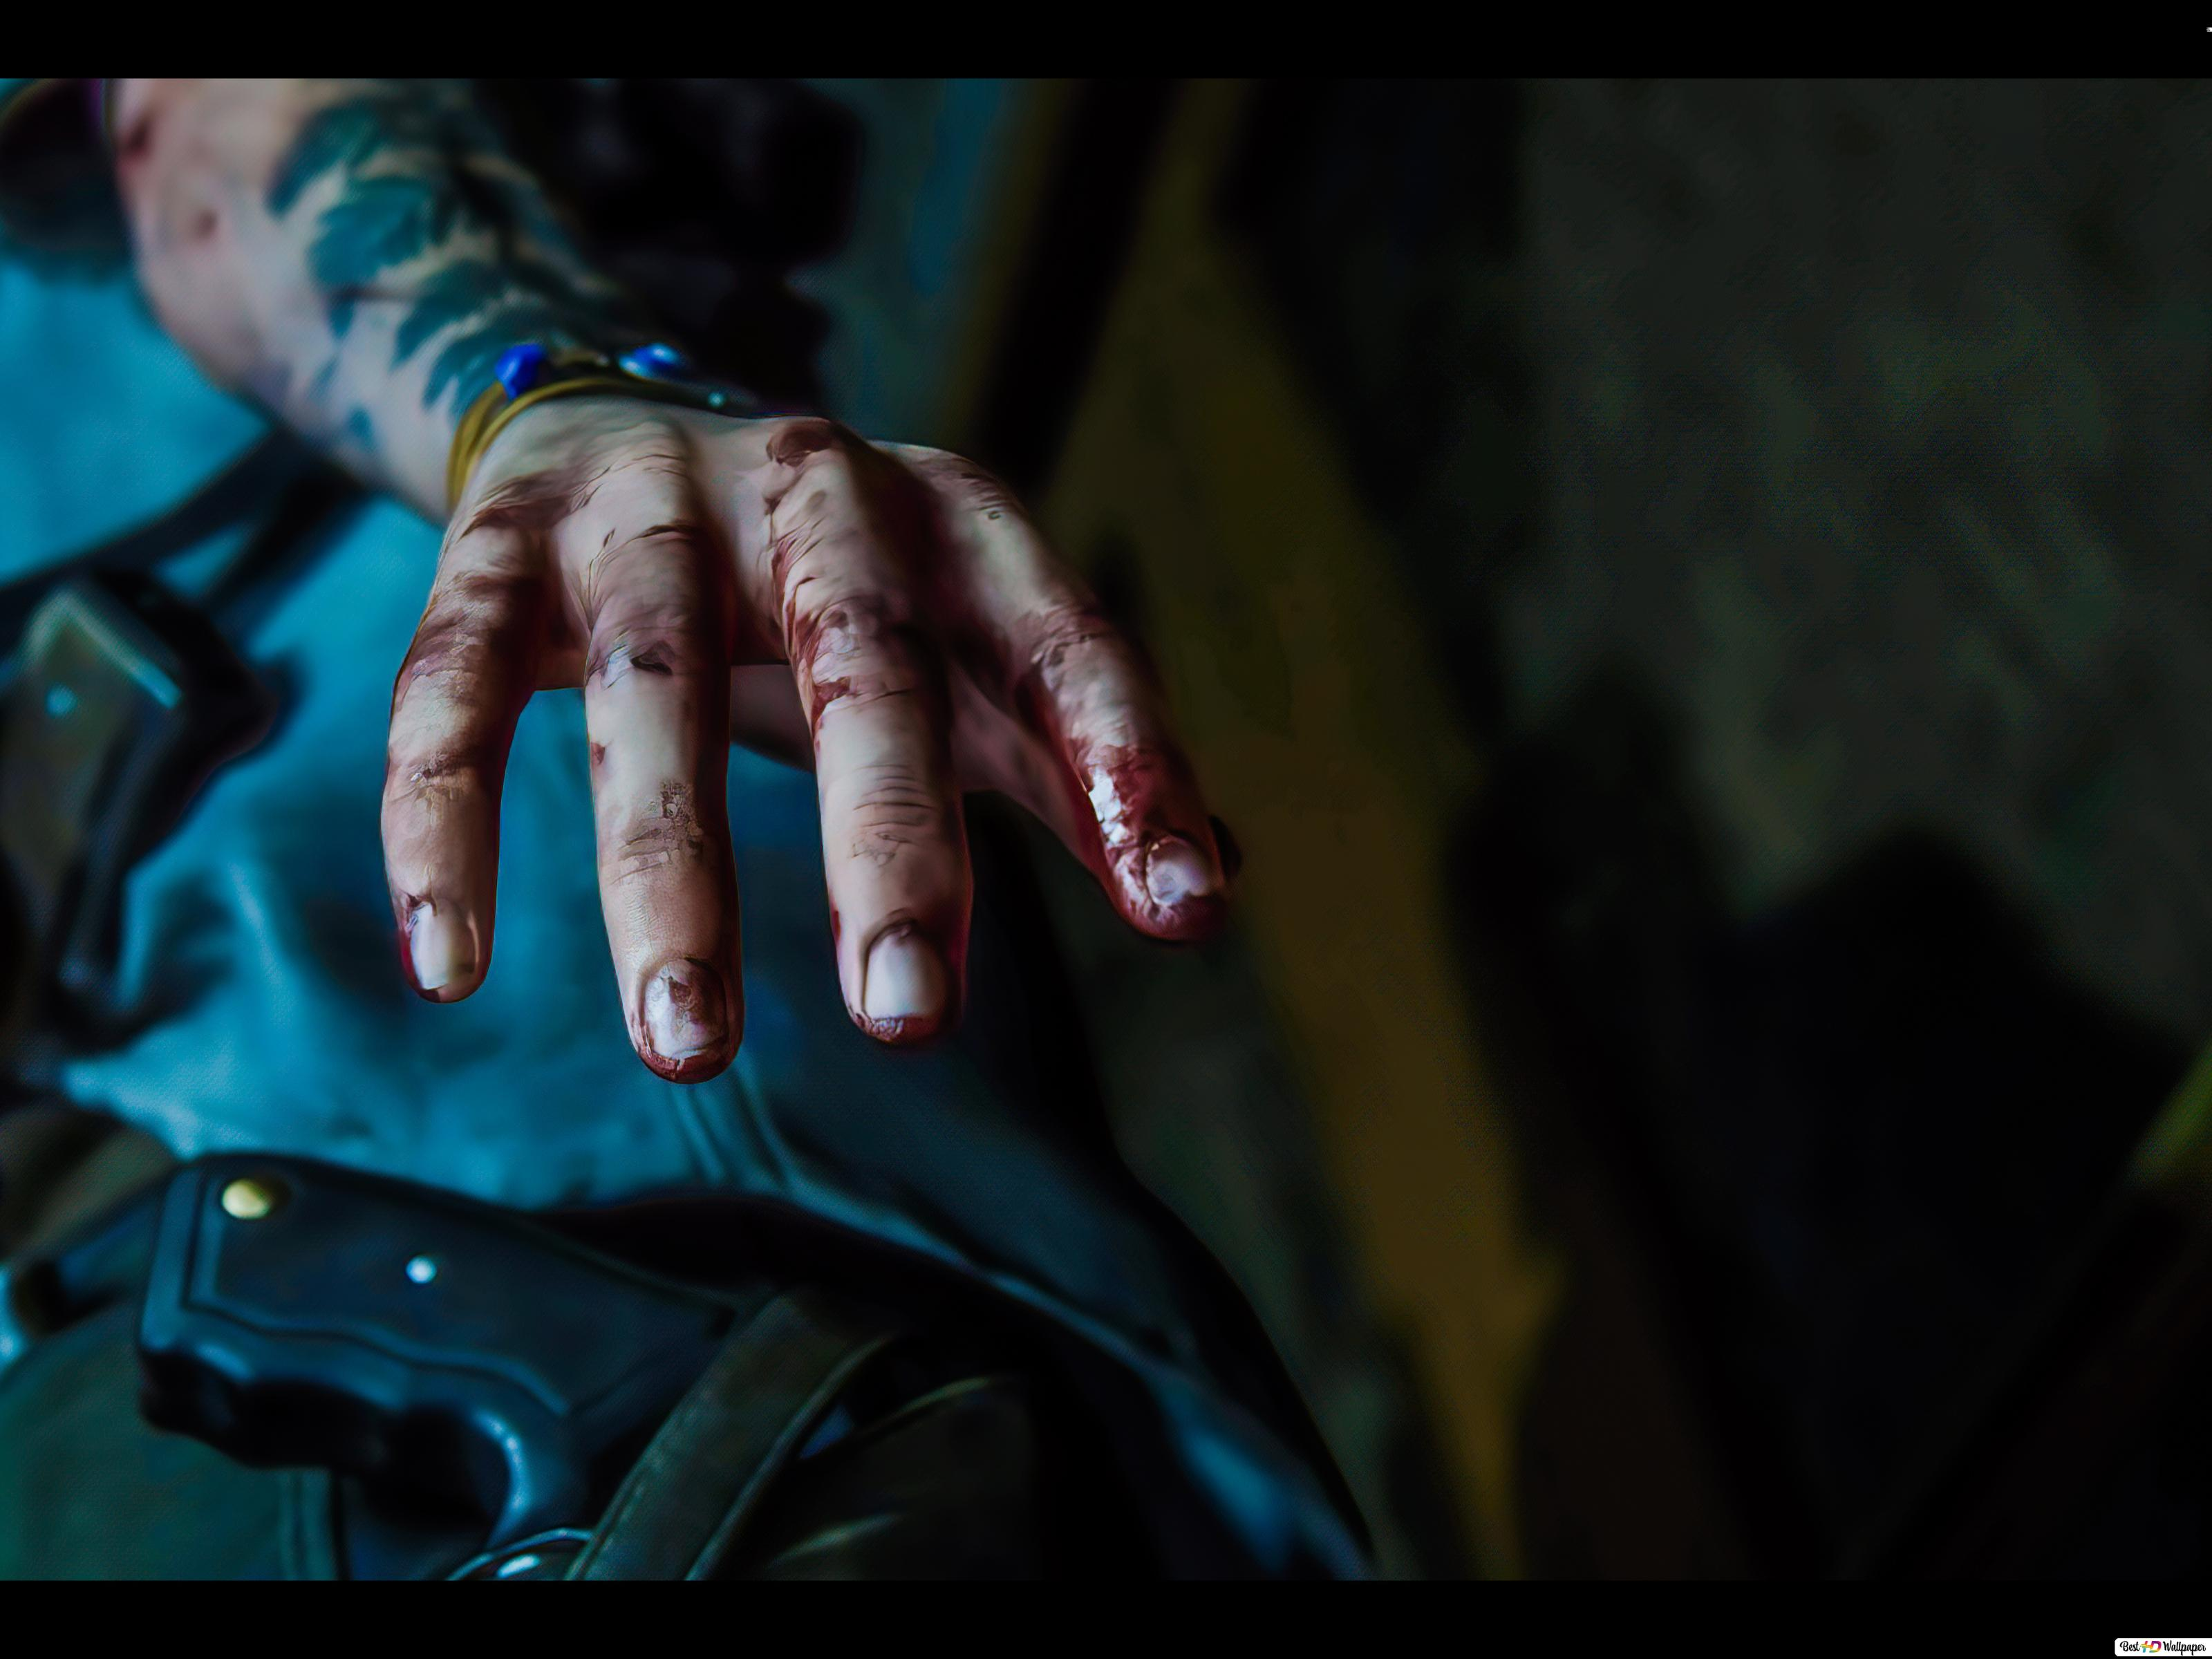 The Last Of Us 2 Ellie Blood Hand 8k 4k Hd Wallpaper Download